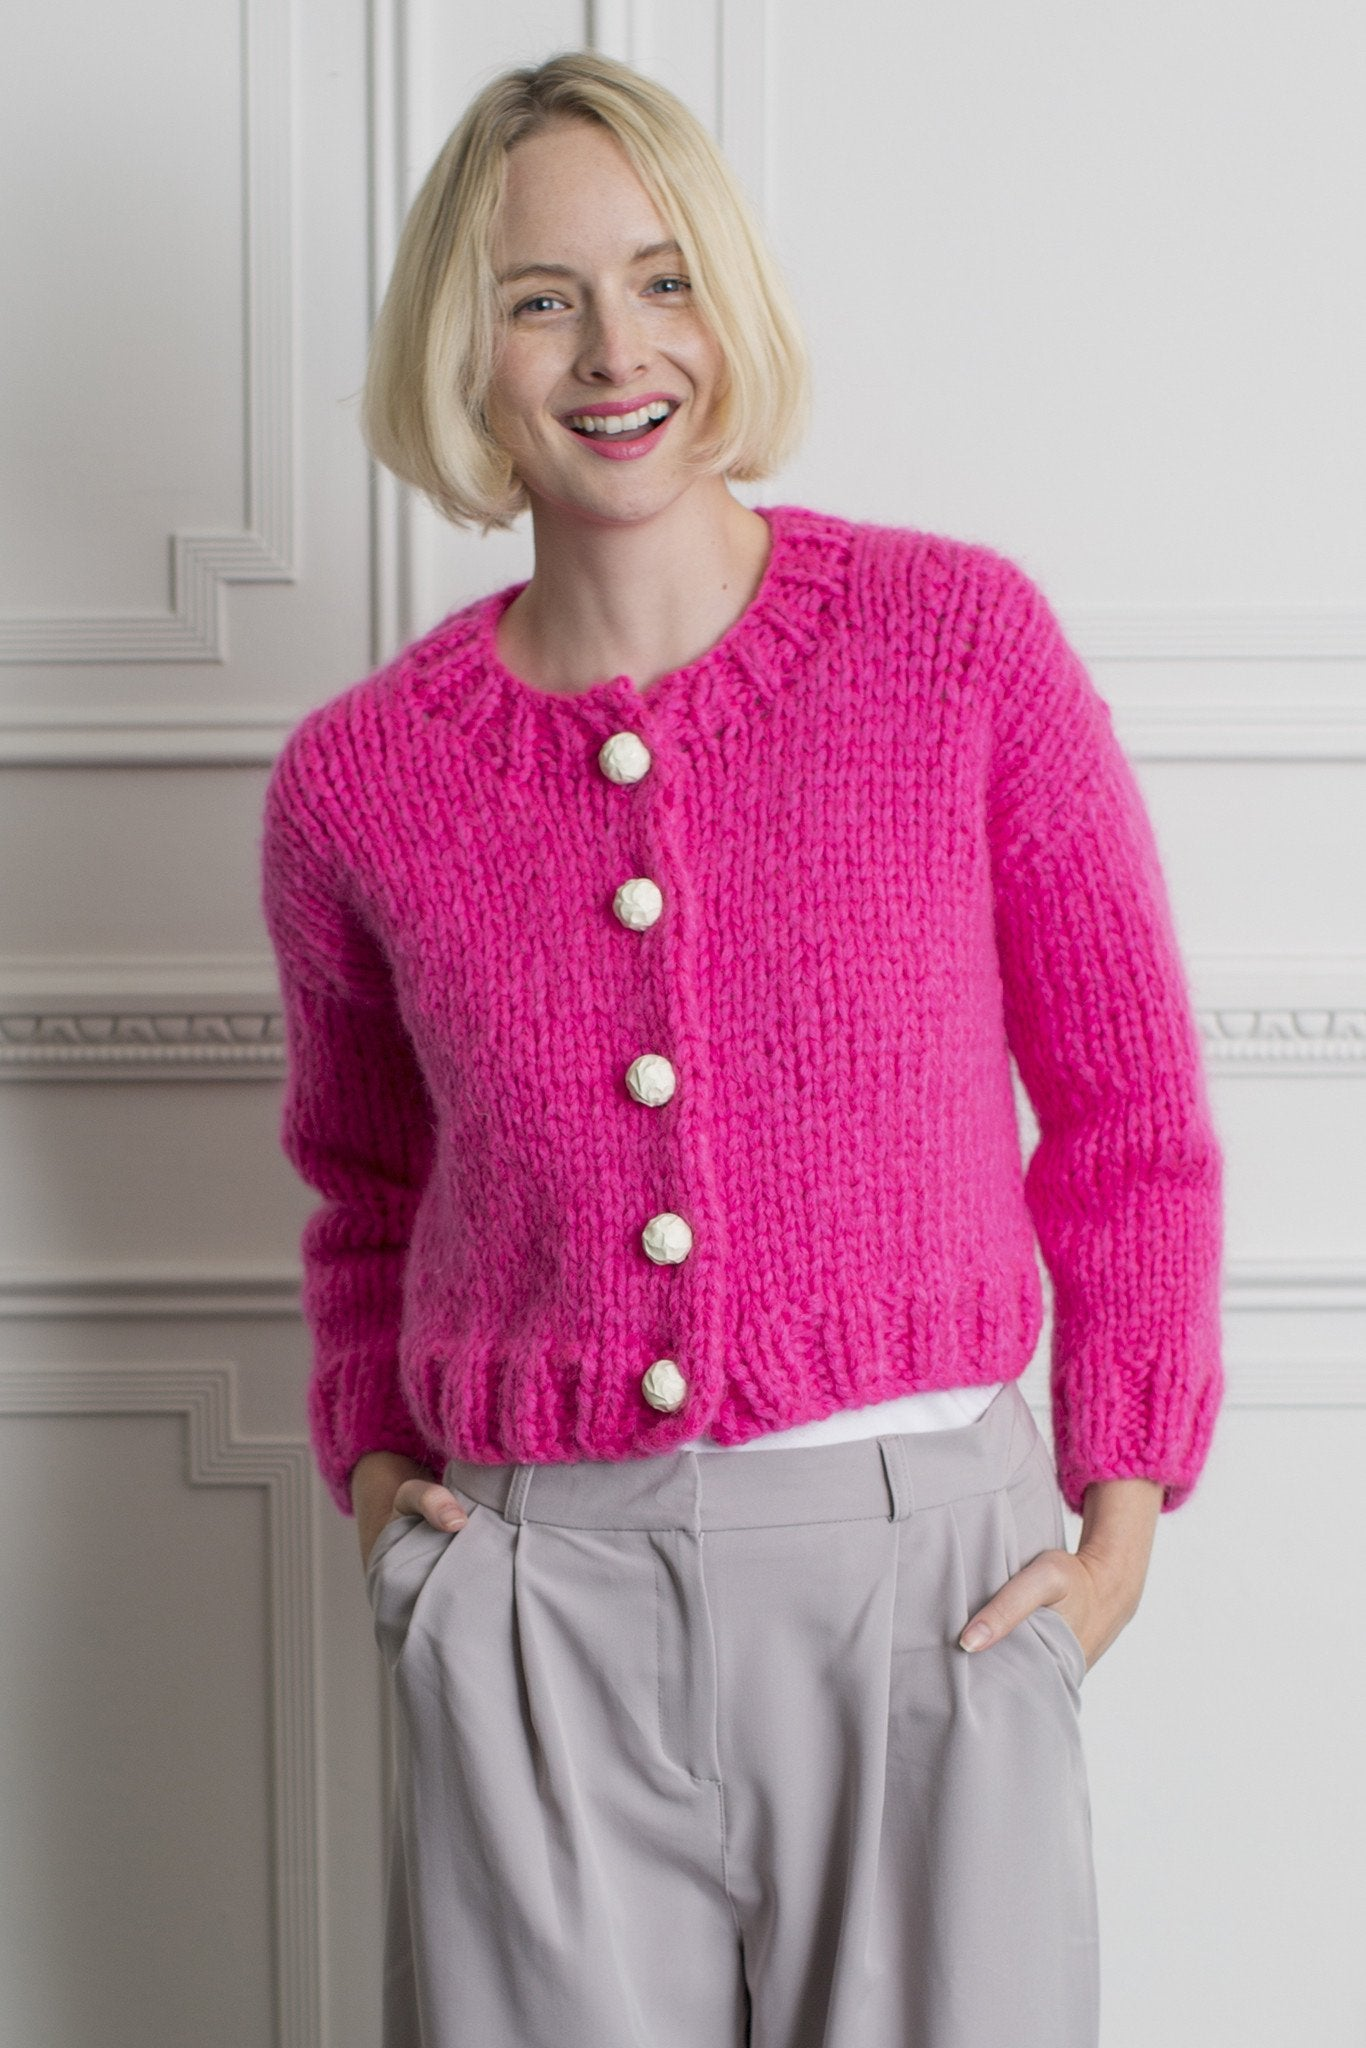 Womens Cropped Cardigan Knitting Pattern – The Knitting Network